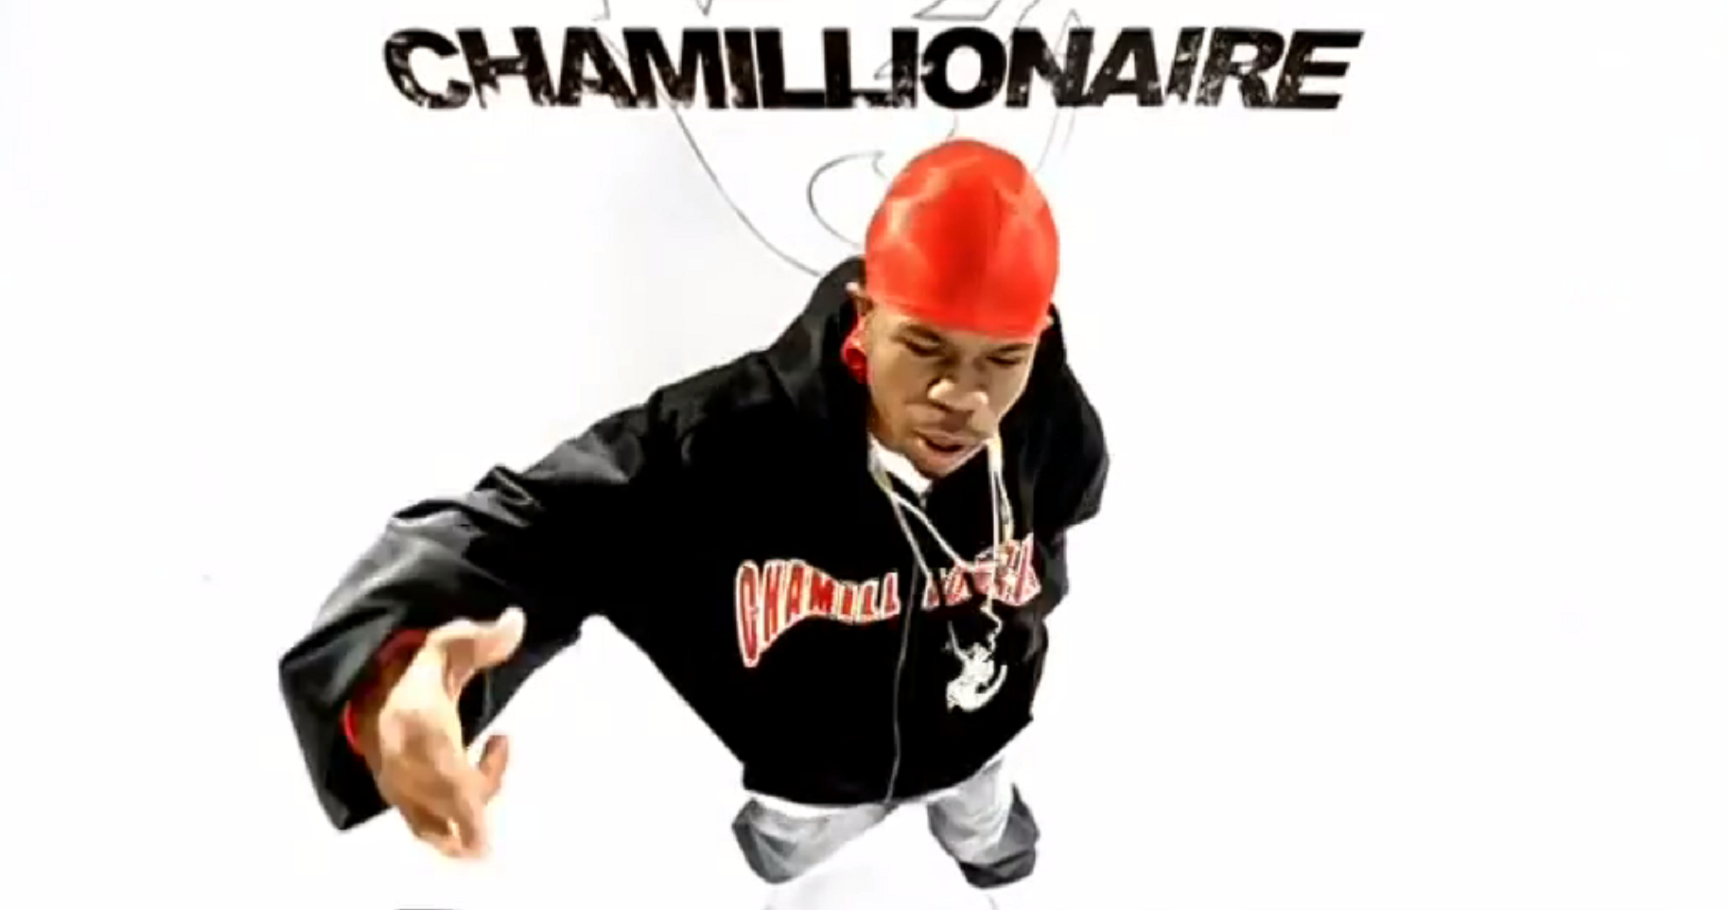 Top 10 One Hit Wonder Rappers Of The 2000s Therichest